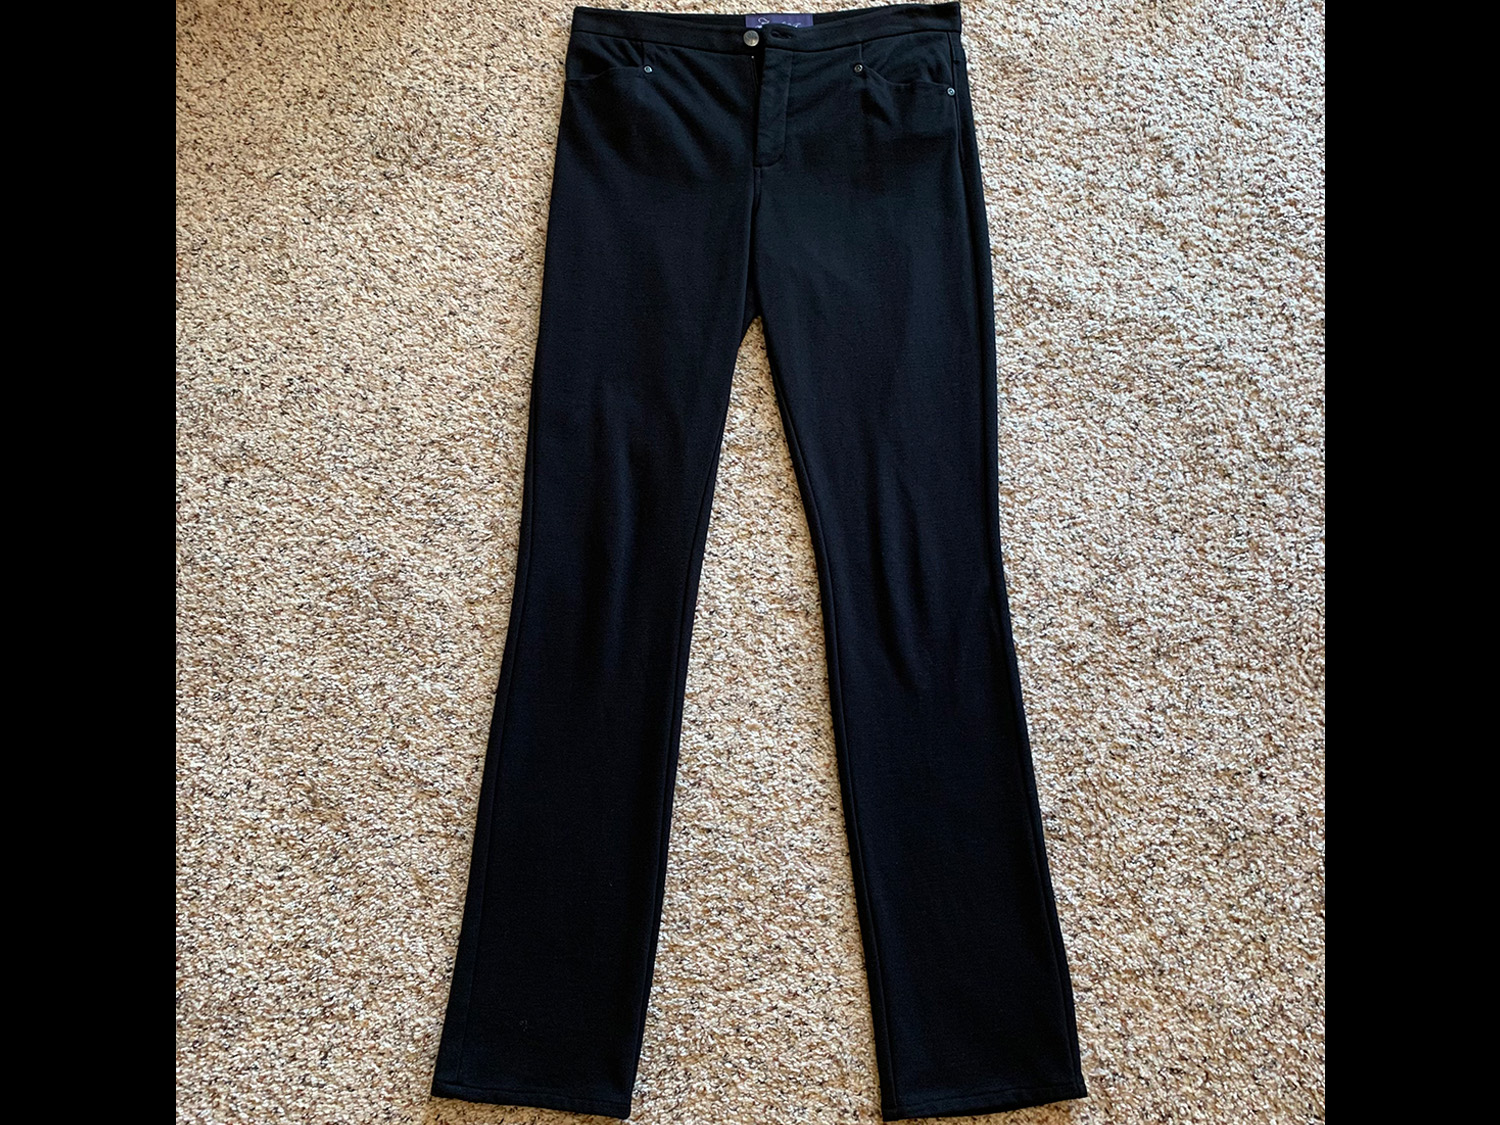 Not Your Daughters Jeans Womens Stretch Trousers Size 6